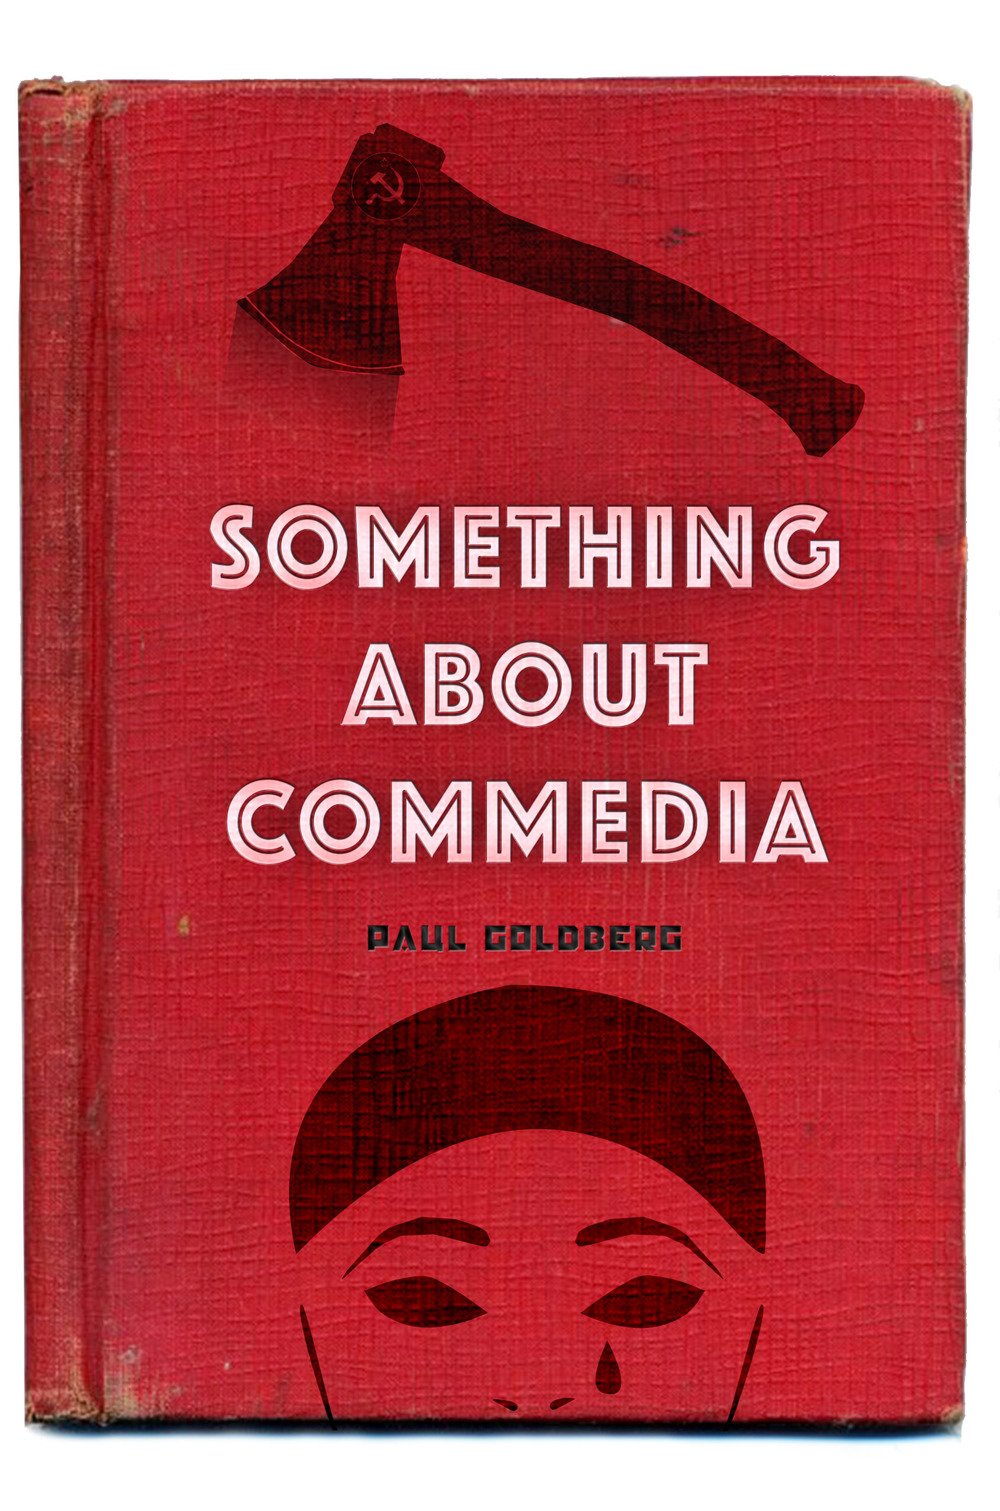 Paul Goldberg talks about Something About Commedia, a book which does not exist.